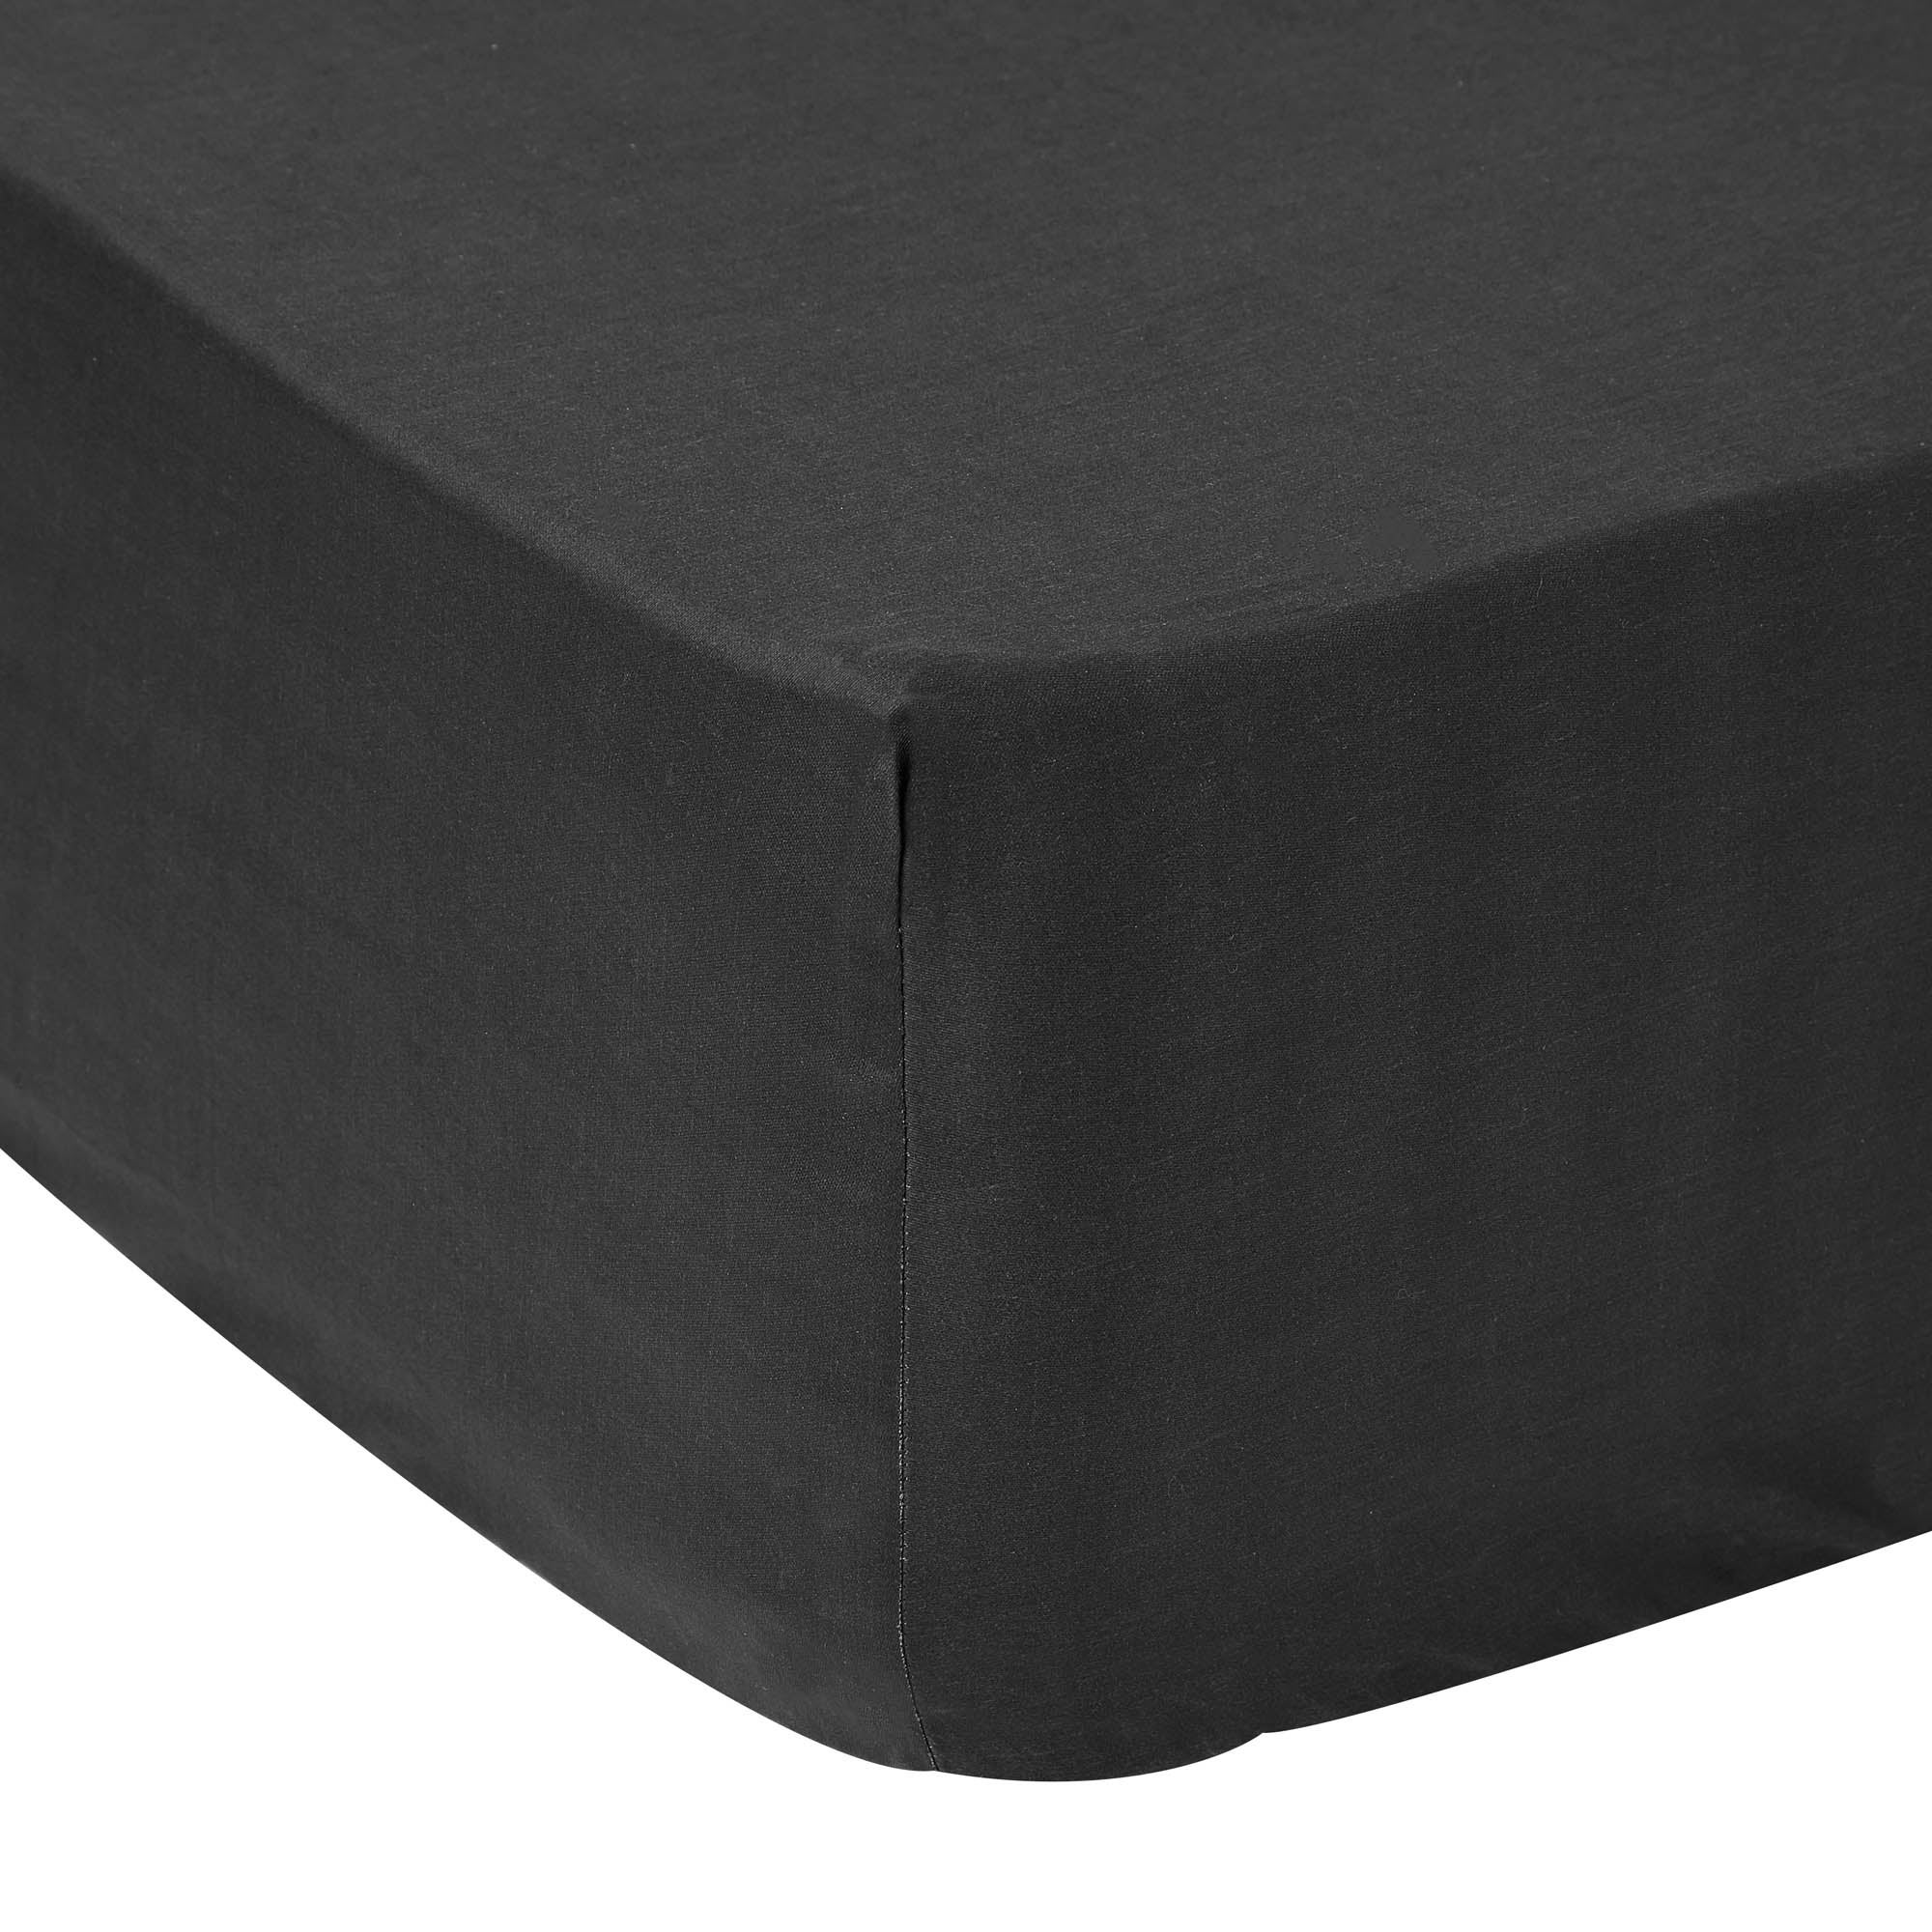 Image of 5A Fifth Avenue 300 Thread Count Modal Black Fitted Sheet Panther Black